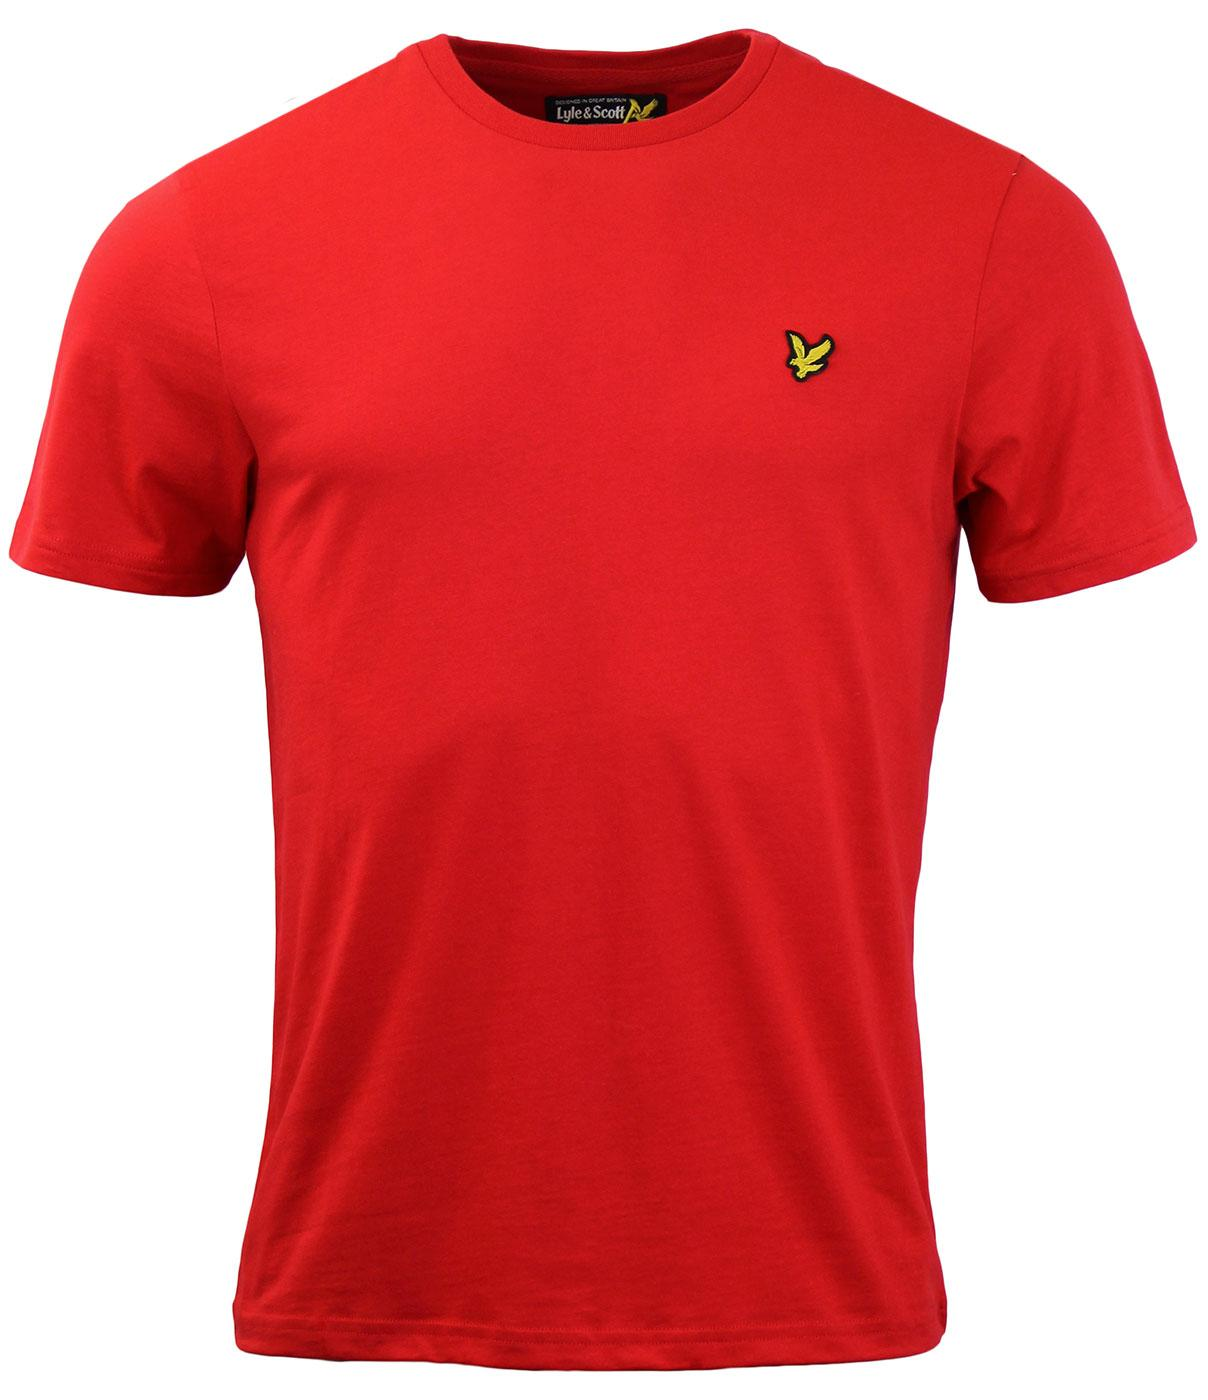 LYLE & SCOTT Retro Plain Golden Eagle T-Shirt RR